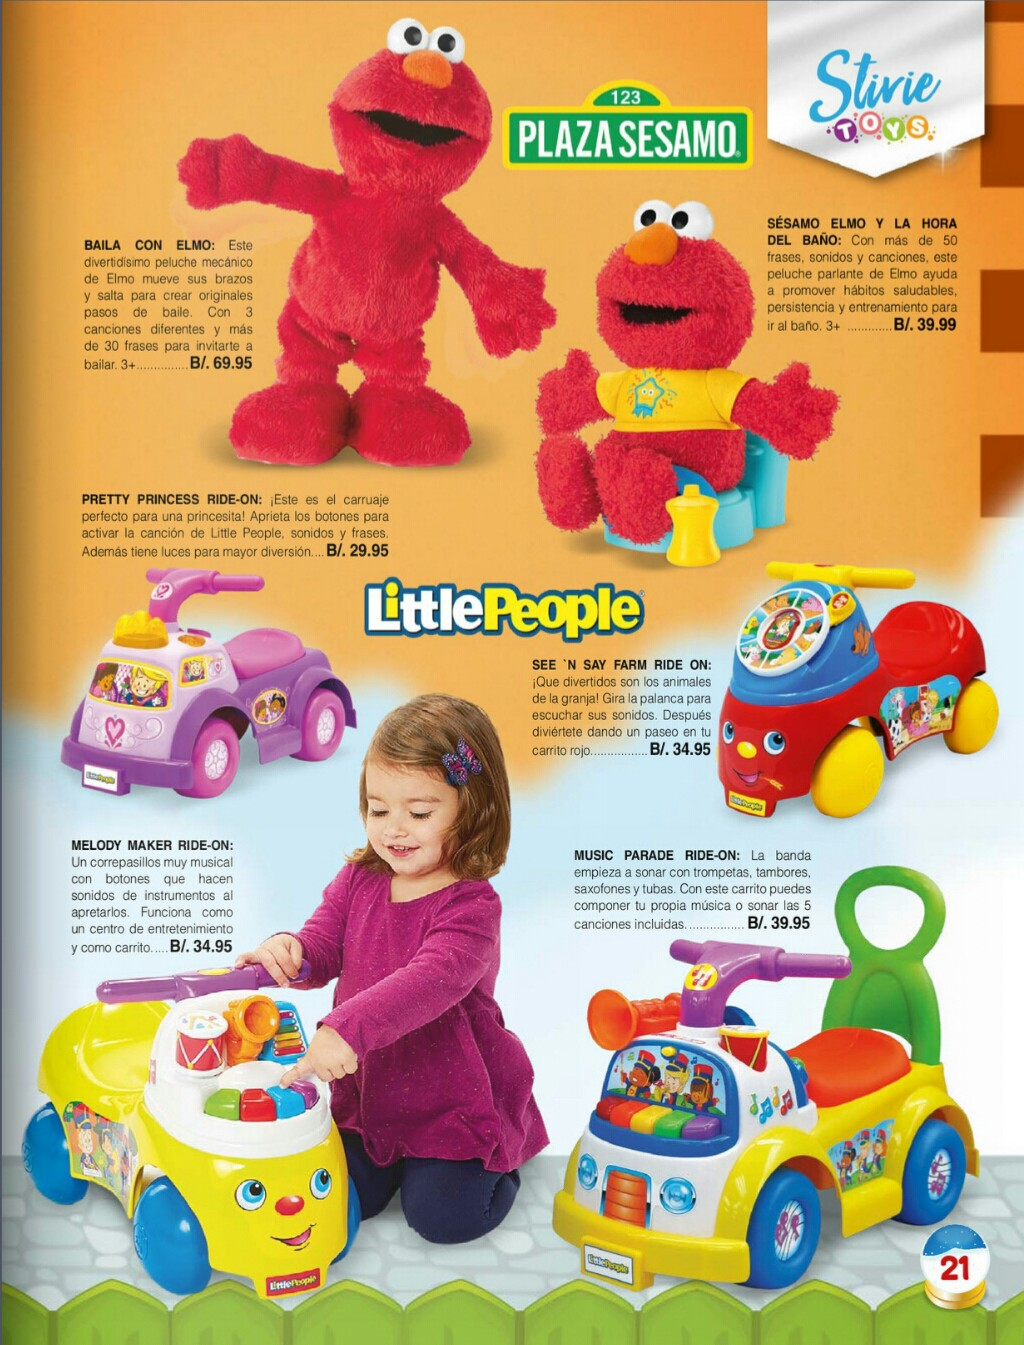 Catalogo juguetes Stivie toys 2018 p21